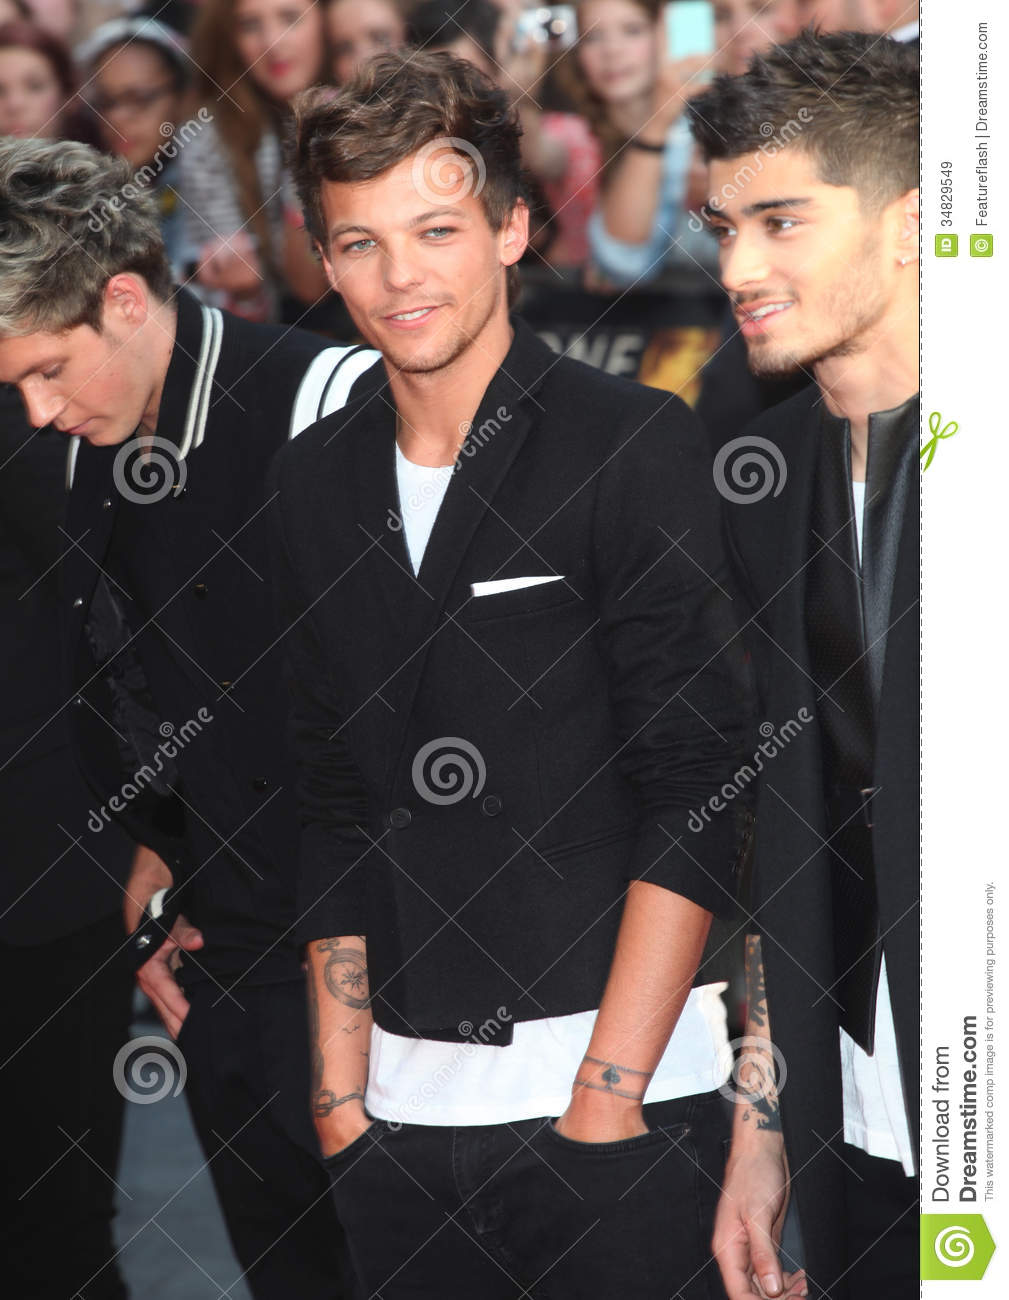 Louis Tomlinson,One Direction